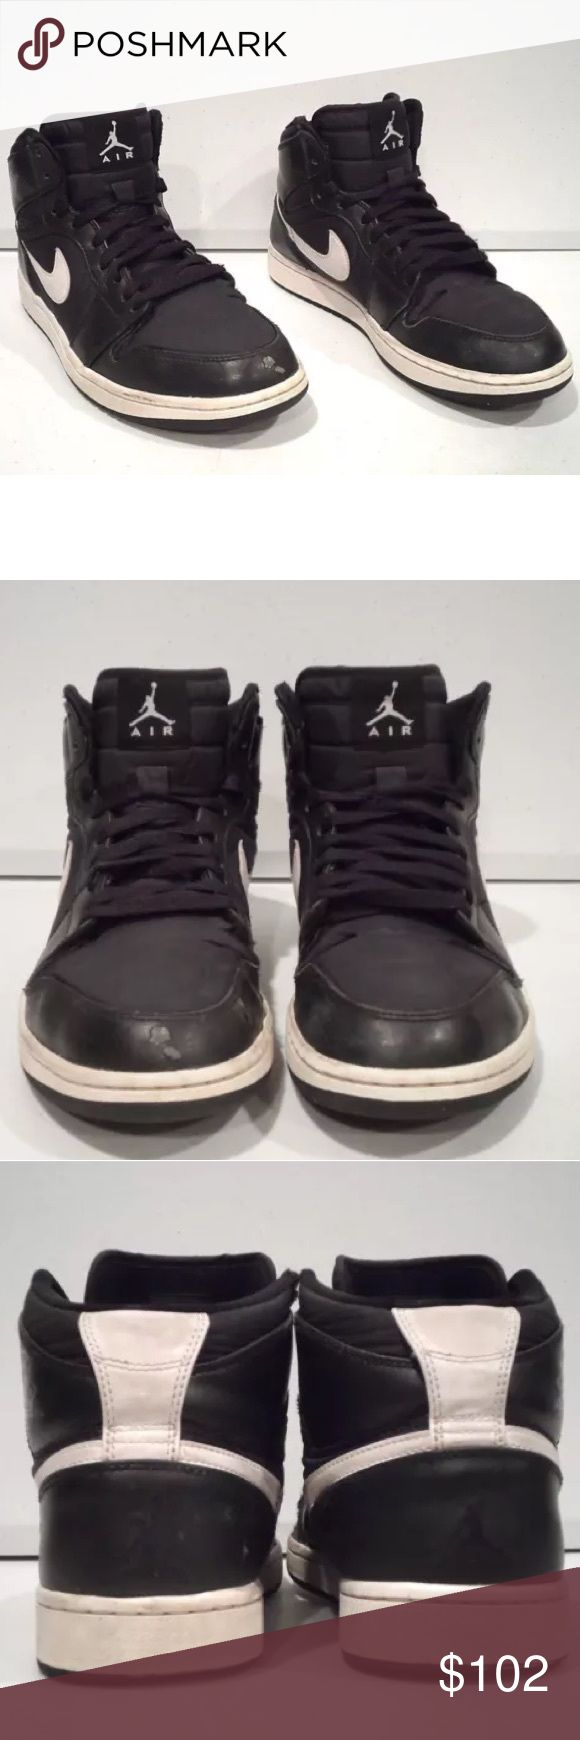 Jordan 1 men size 9 Jordan 1 black and white Jordan Shoes Sneakers